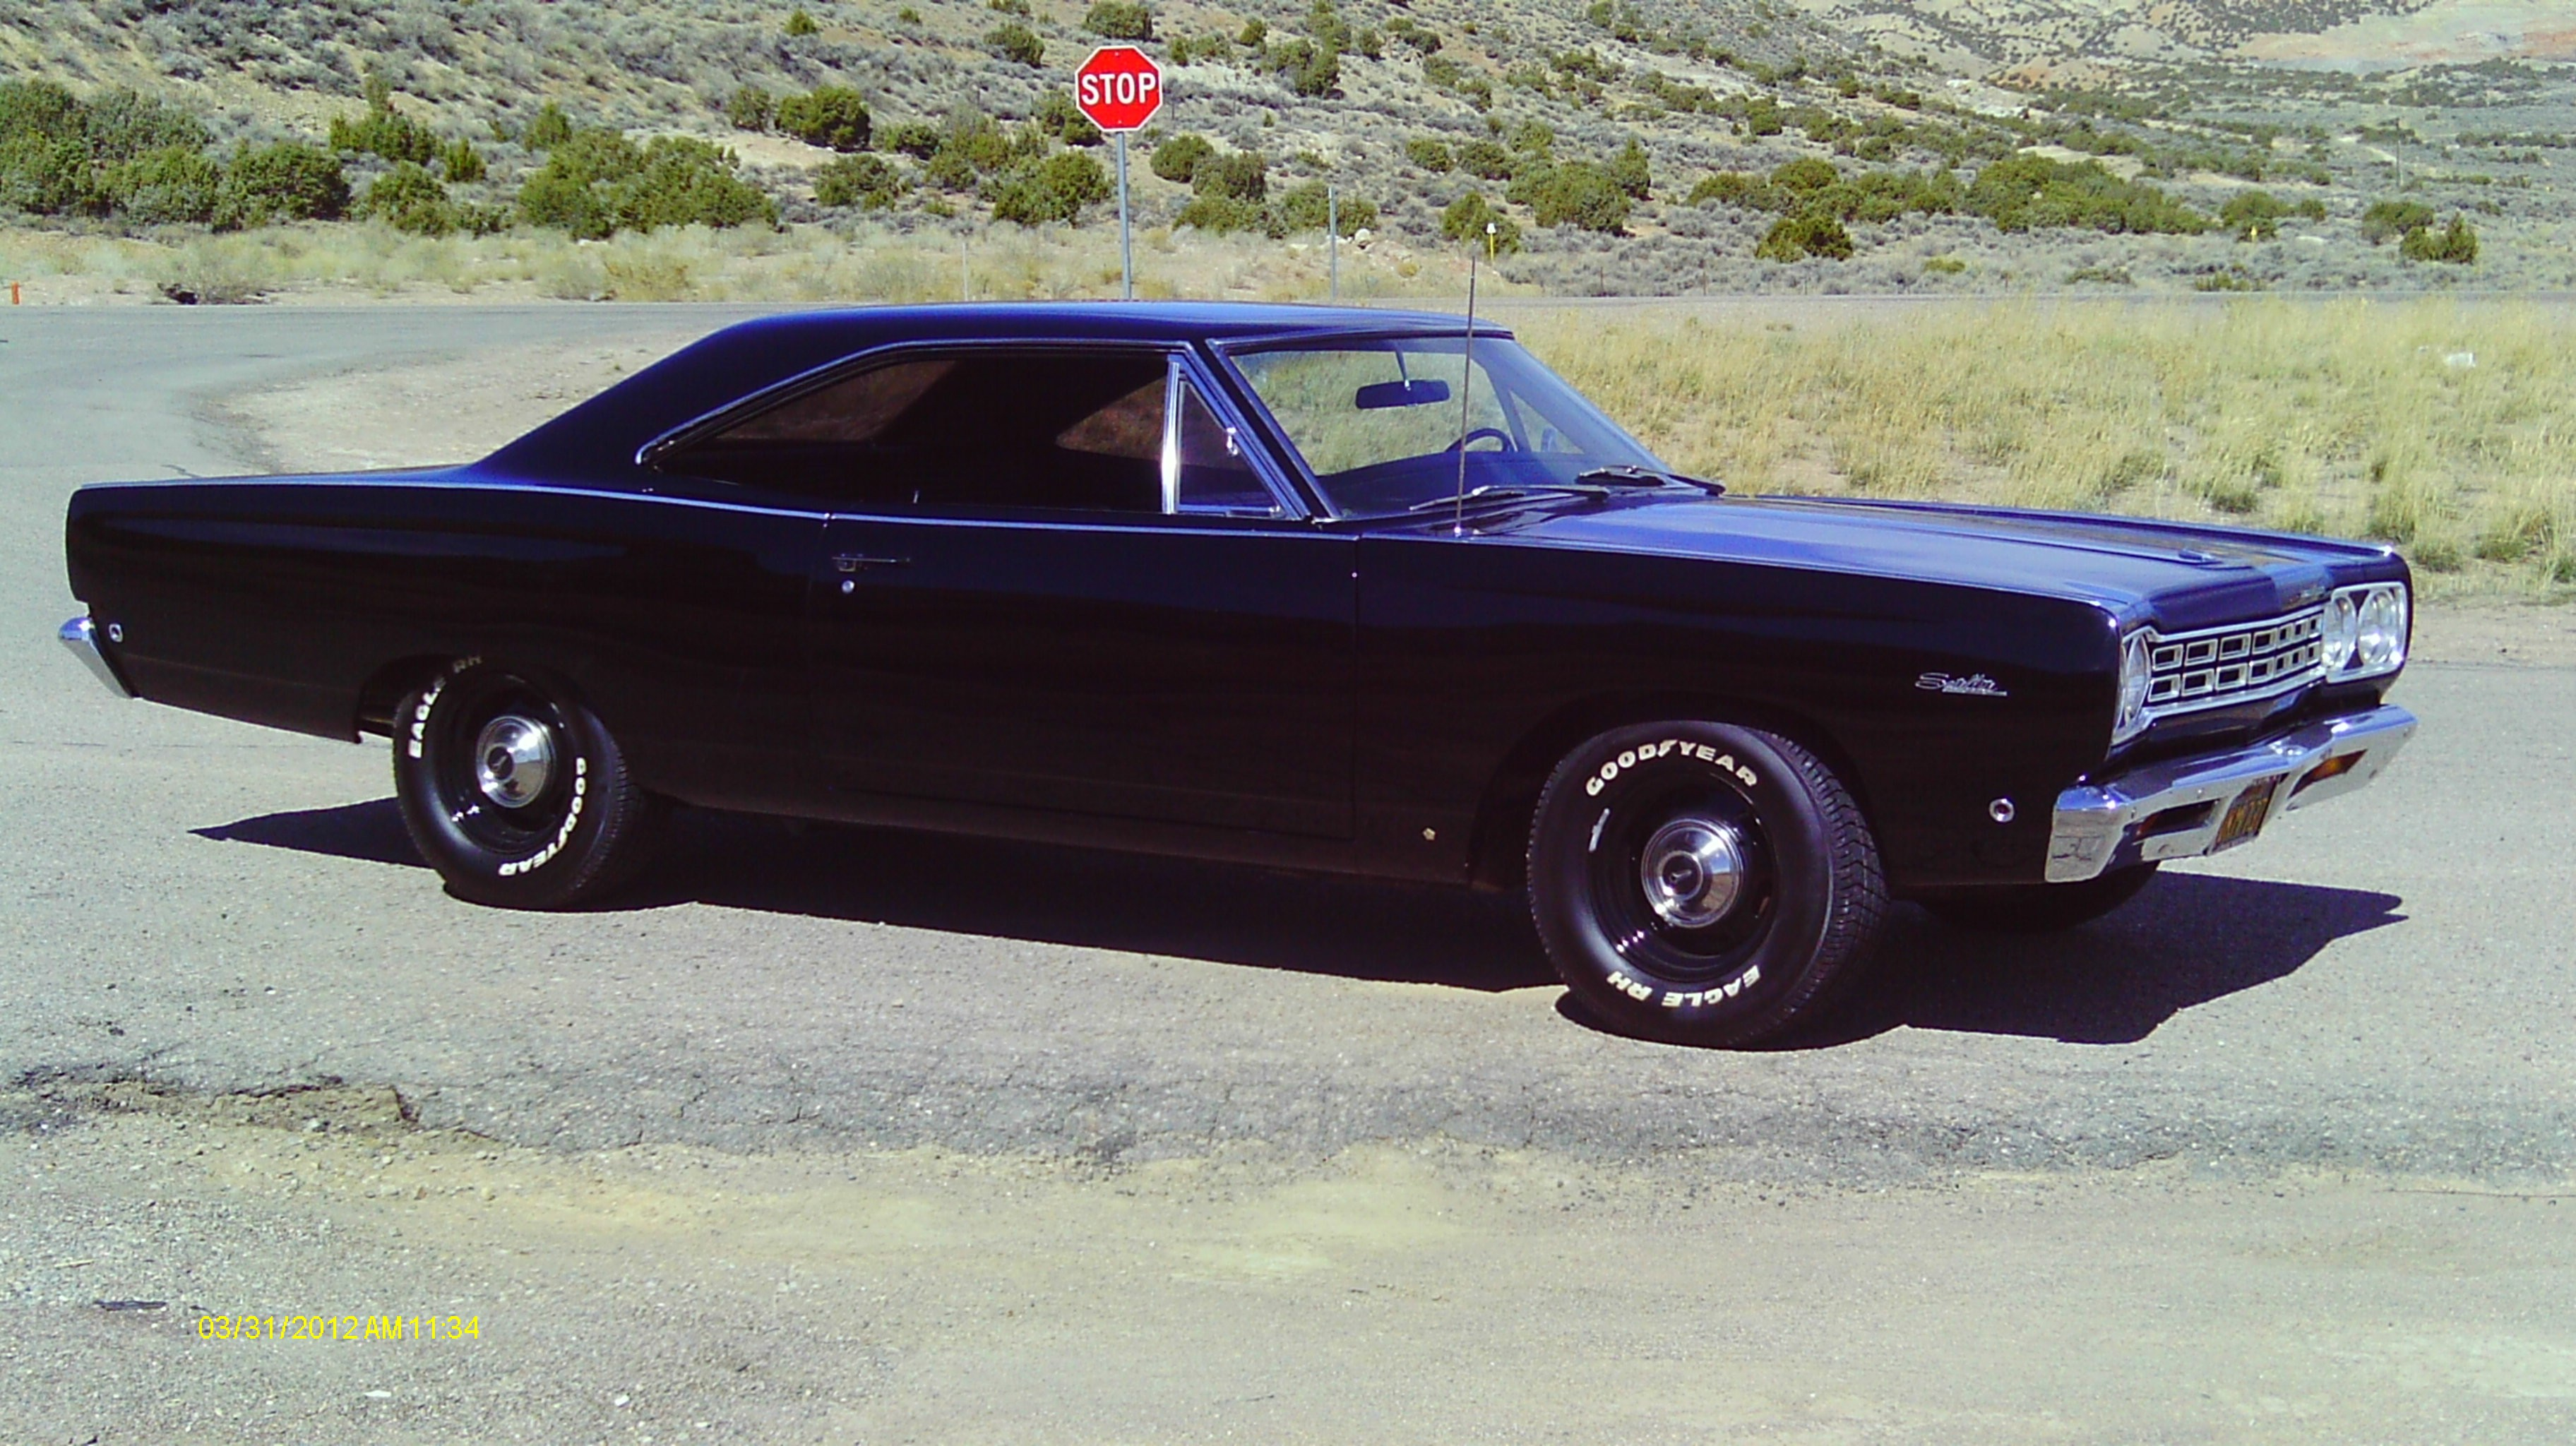 Plymouth Satellite likewise Li Buick Club Member Cars S Z moreover Collectible Classic 1968 1972 Buick Gran Sport further 1970 Buick Gs 2 together with 1964 Pontiac Gto Profile. on buick gran sport